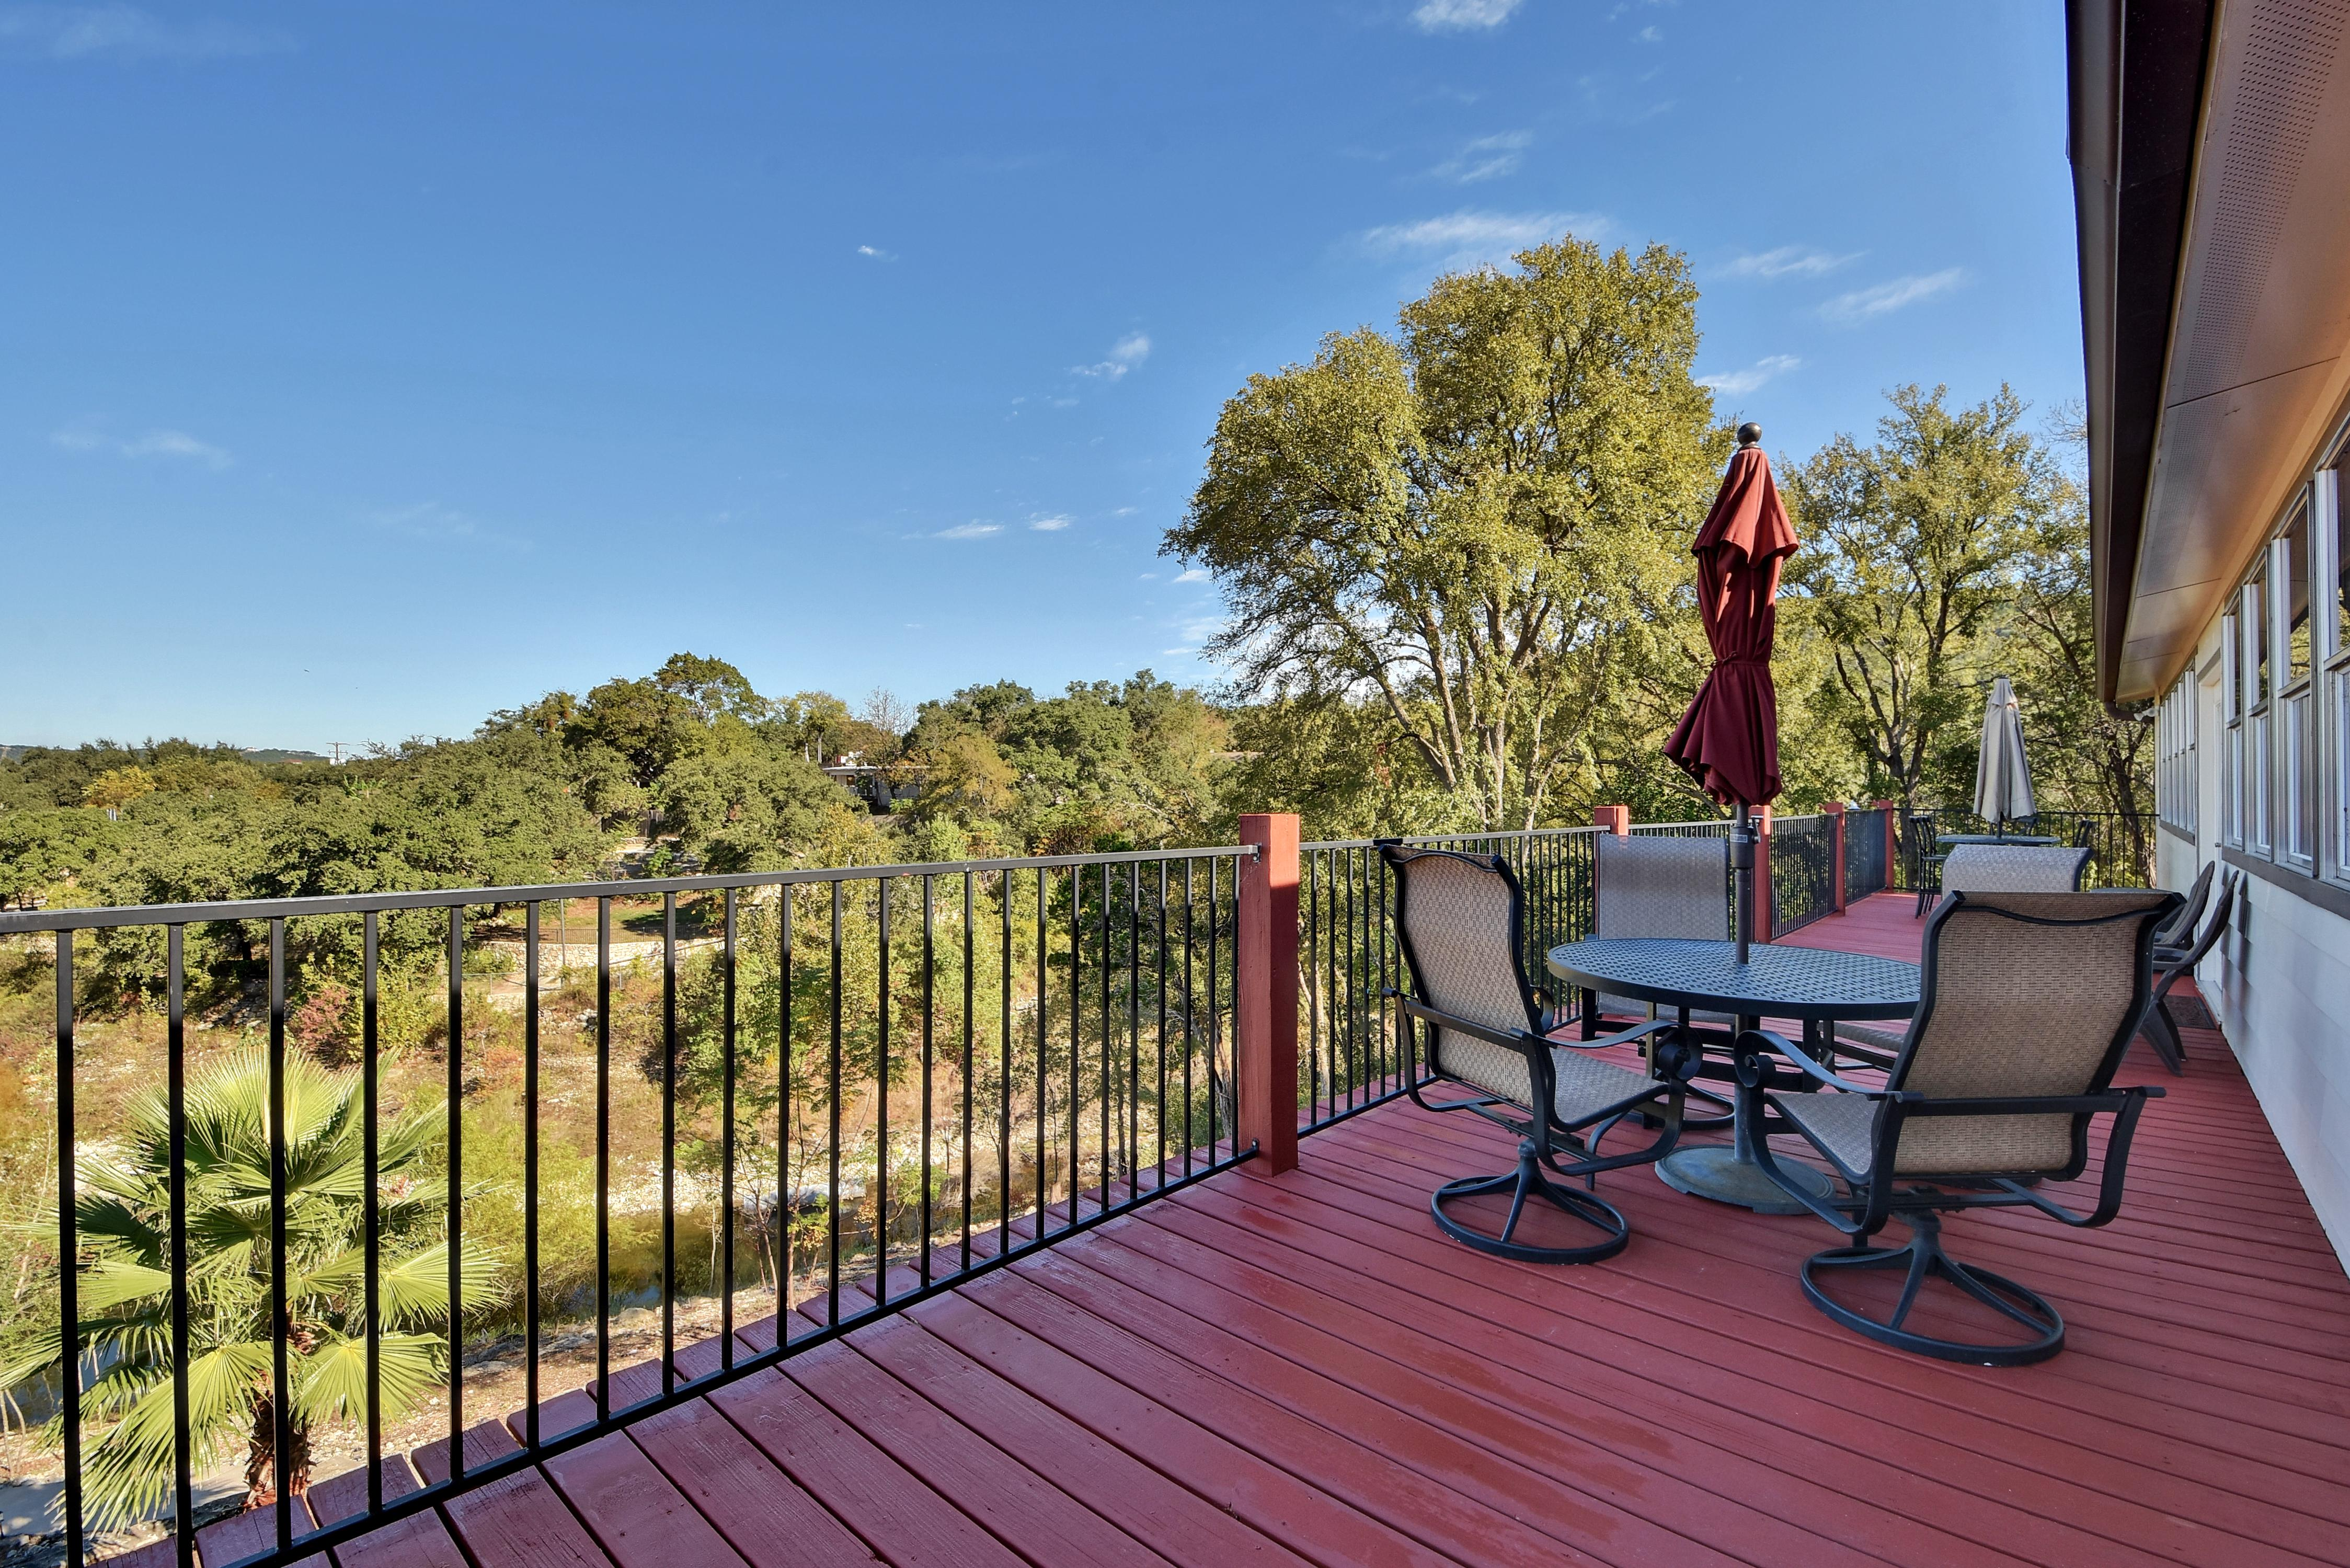 Relax on the upper deck with water views and a shaded dining table for 4.